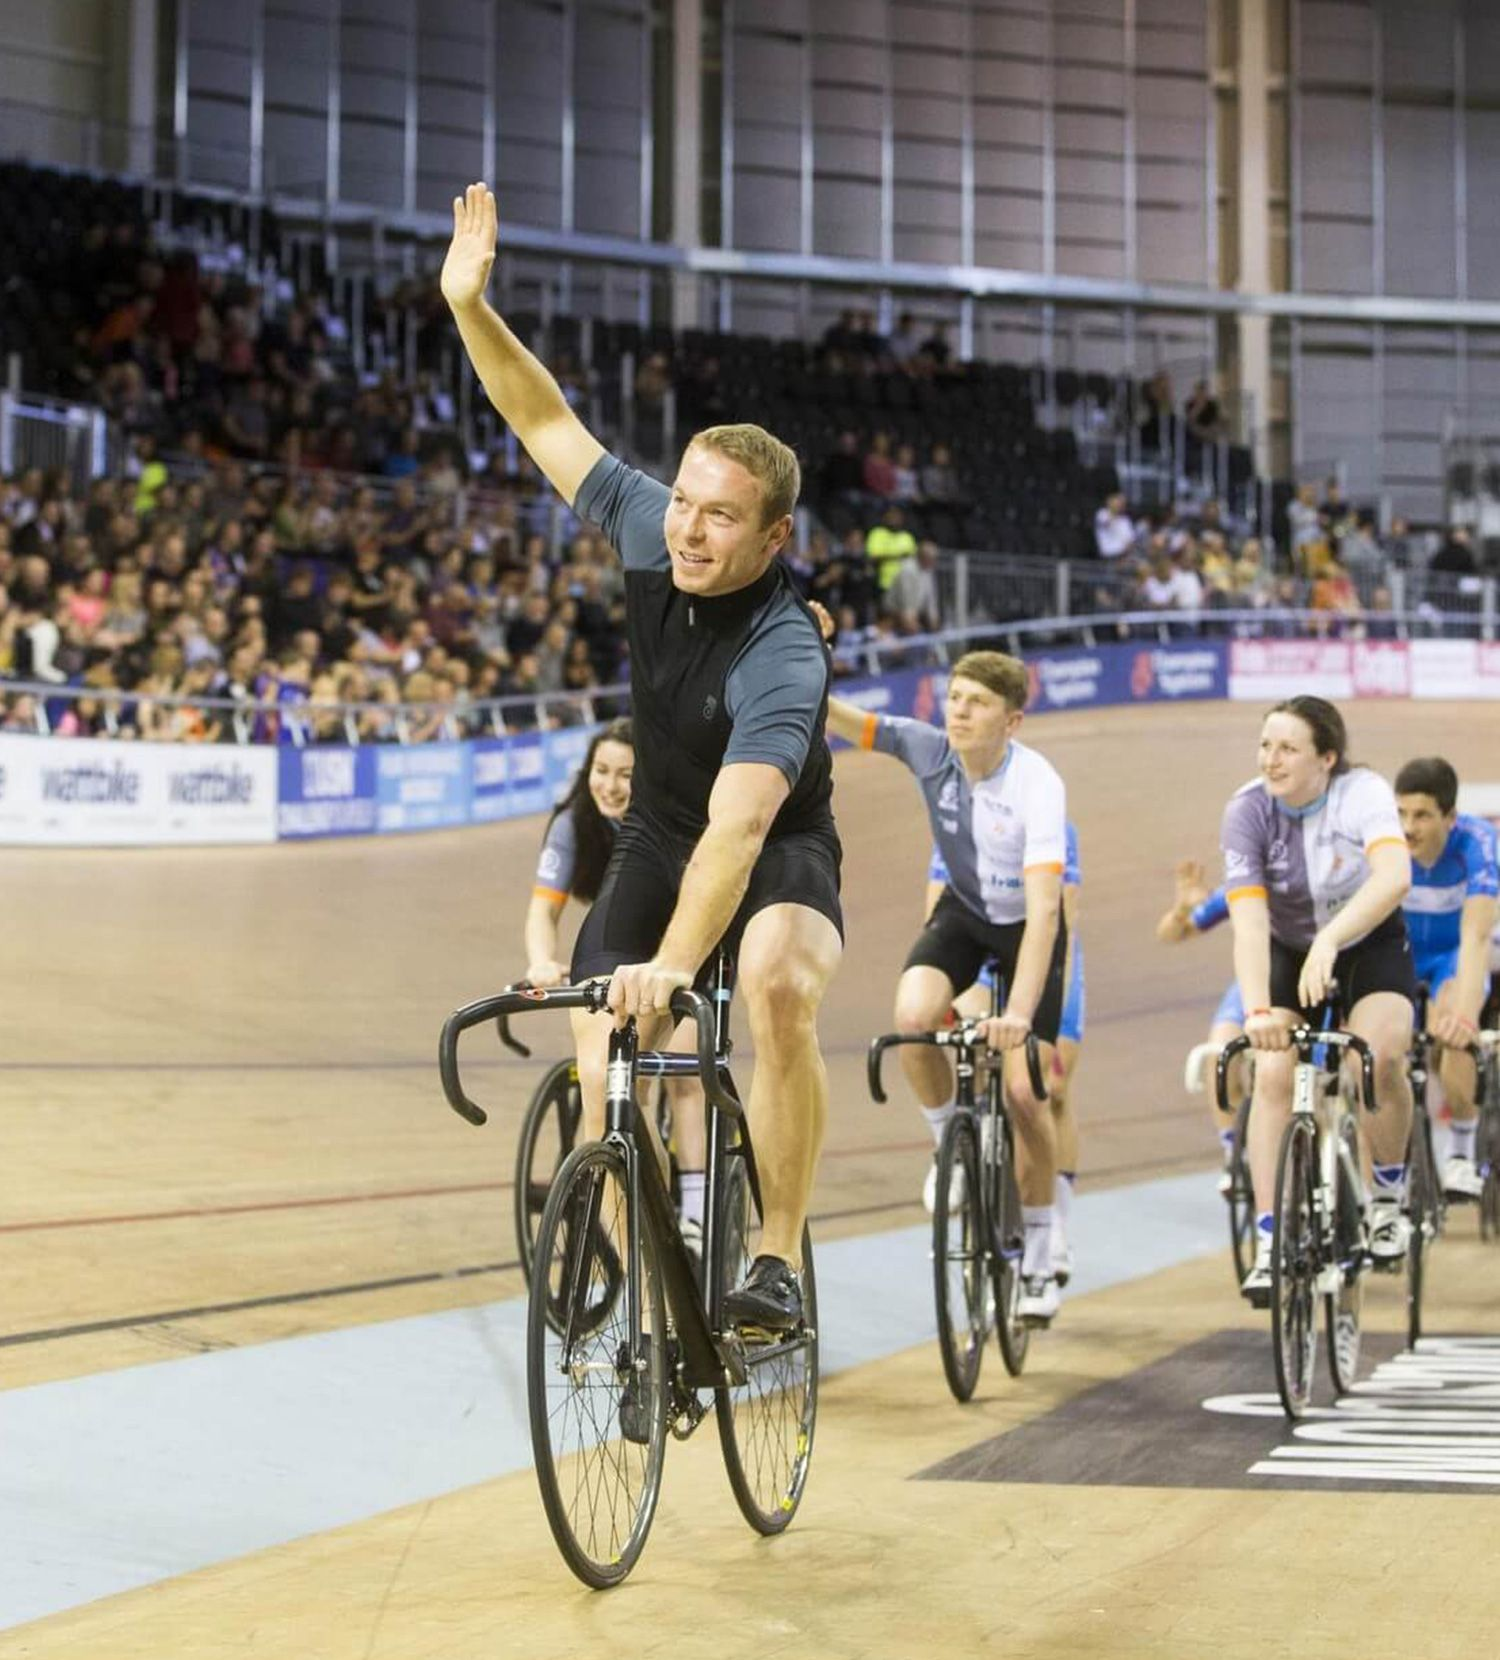 EMIRATES ARENA & SIR CHRIS HOY VELODROME